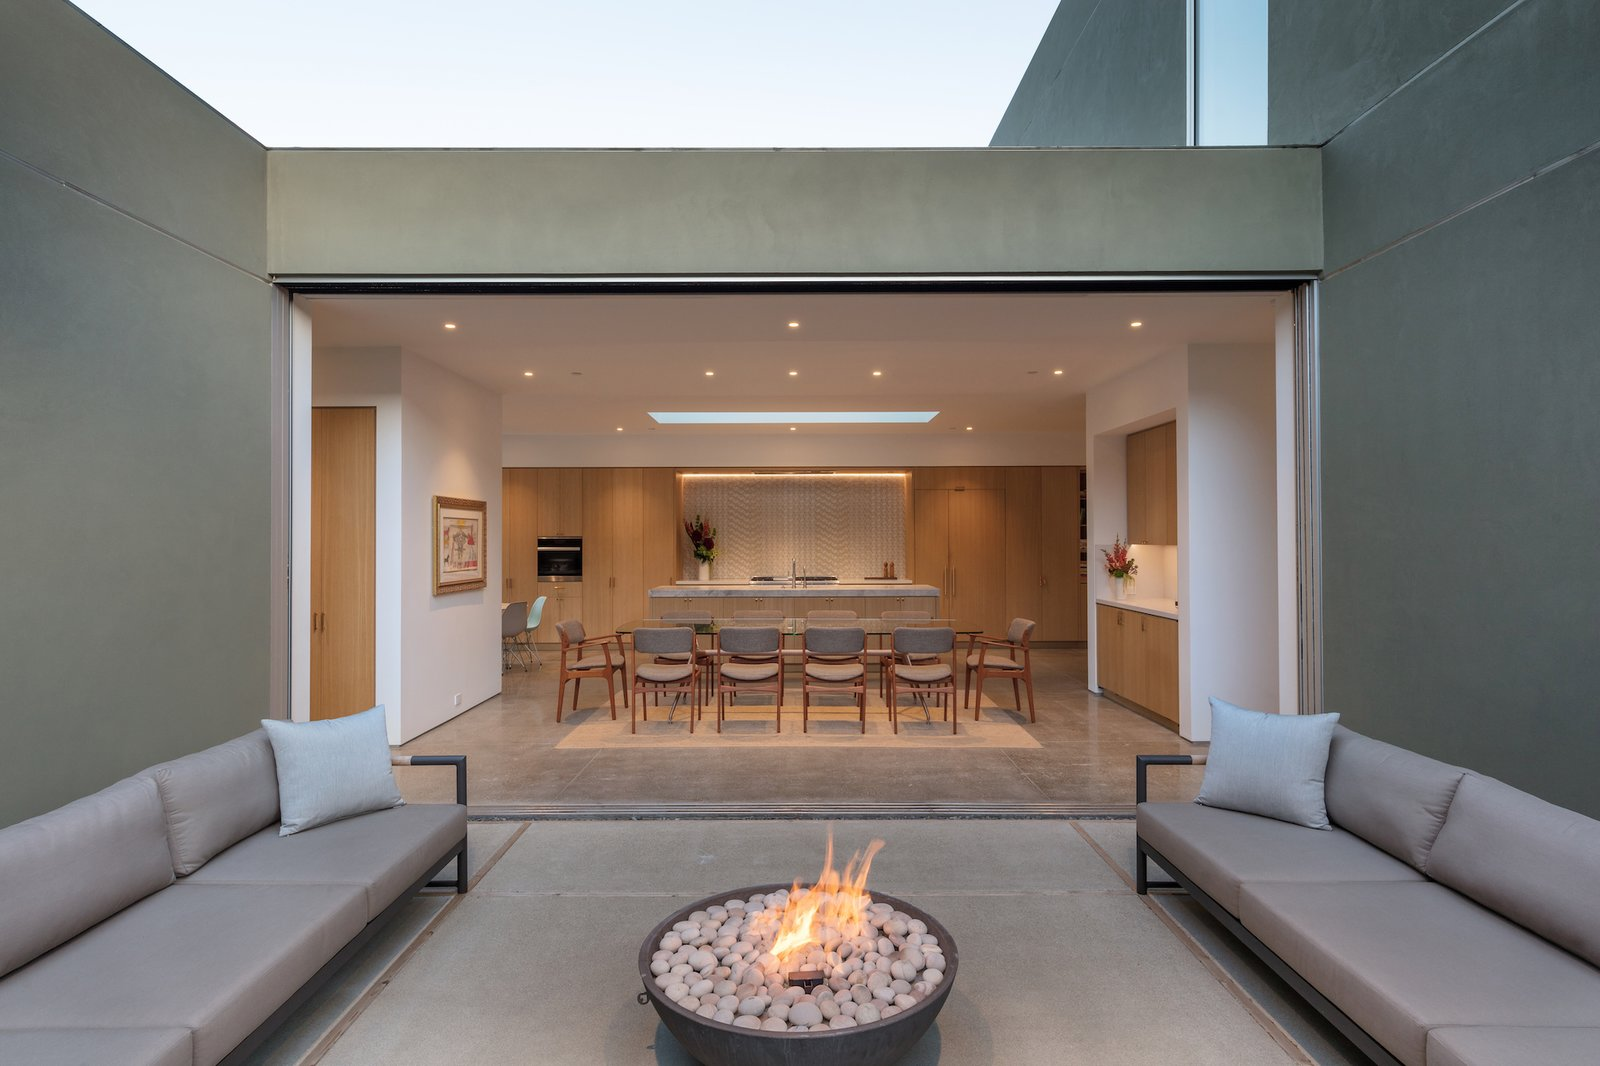 Courtyard of Culver City Case Study House by Woods + Dangaran.